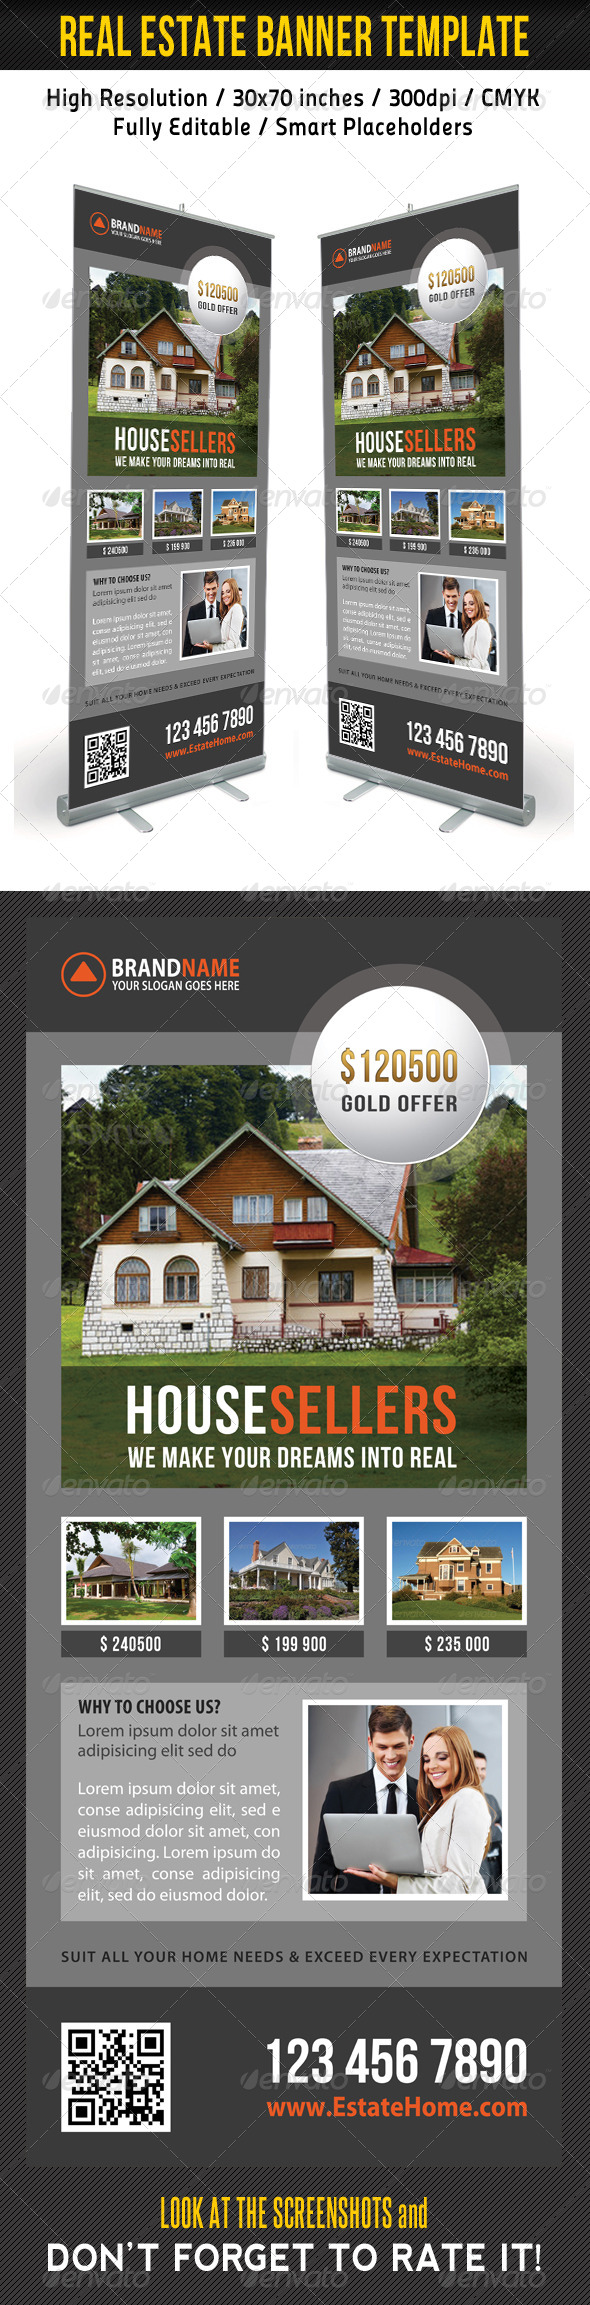 GraphicRiver Real Estate Banner Template 14 8713498